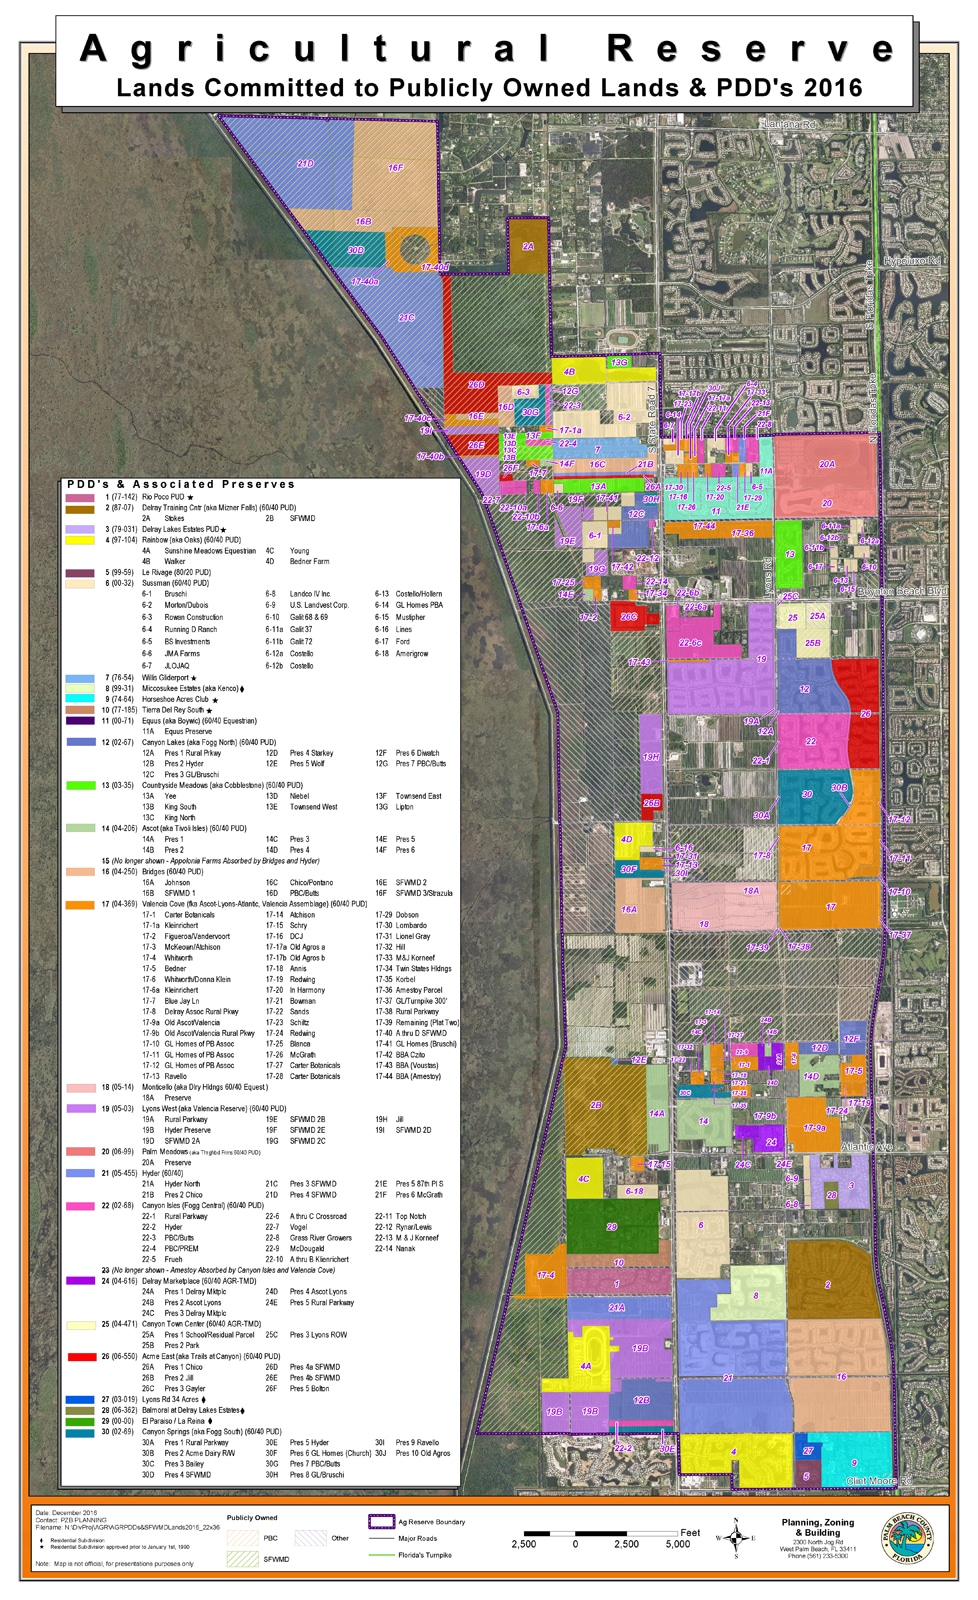 palm beach county's agricultural reserve - flood science